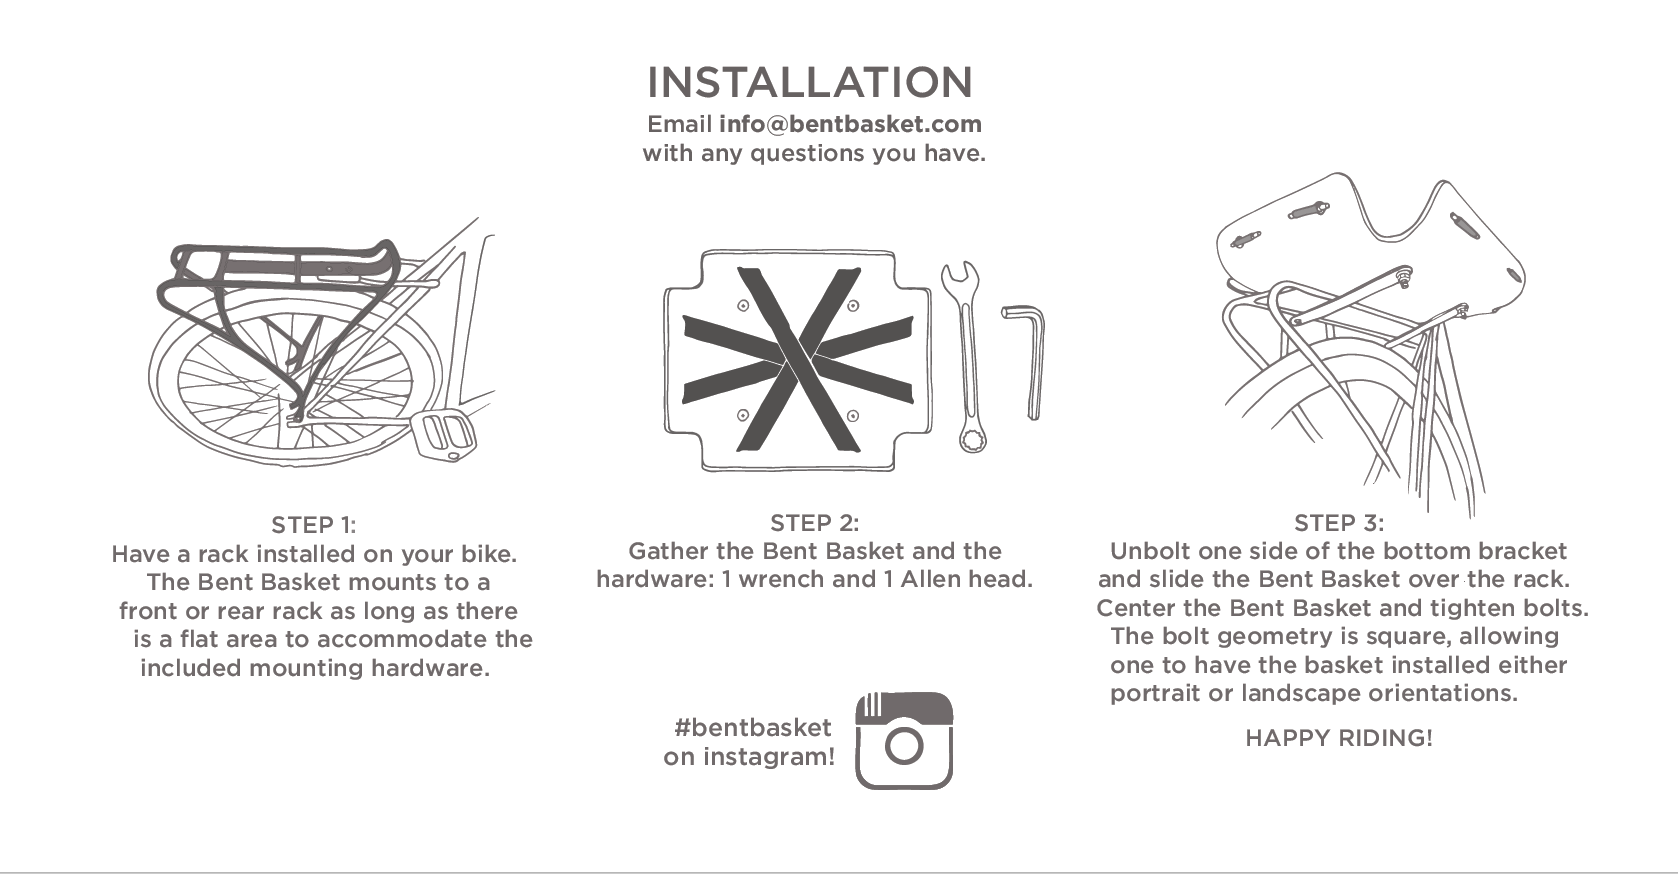 Installing Bent Basket is as easy as 1-2-3